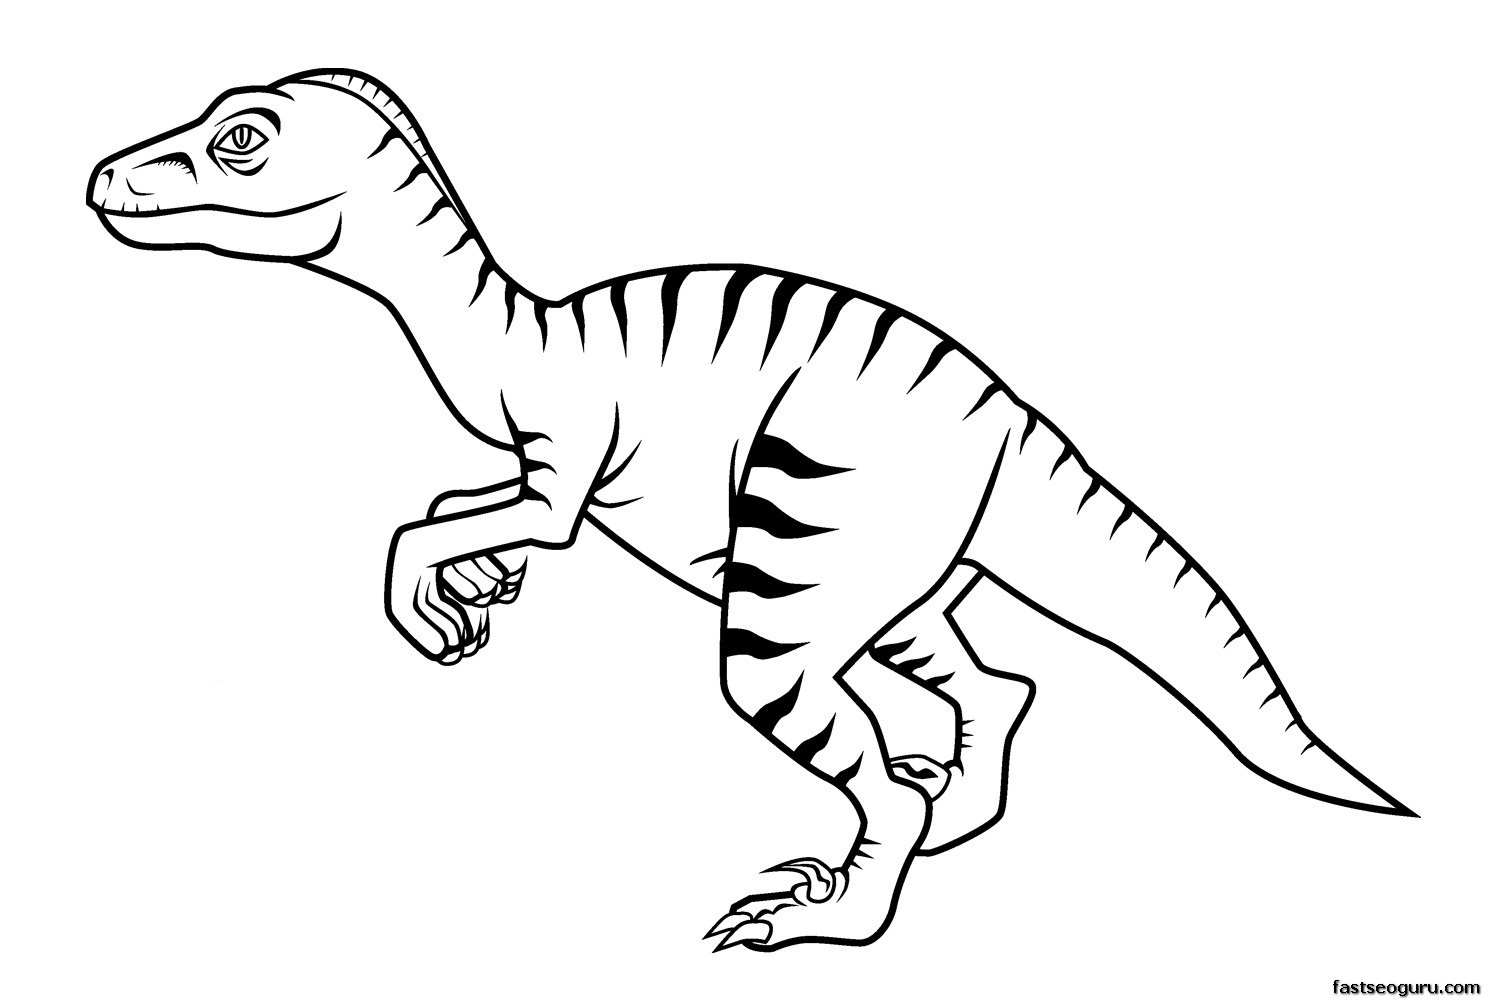 kids coloring pages dinosaurs - photo#5